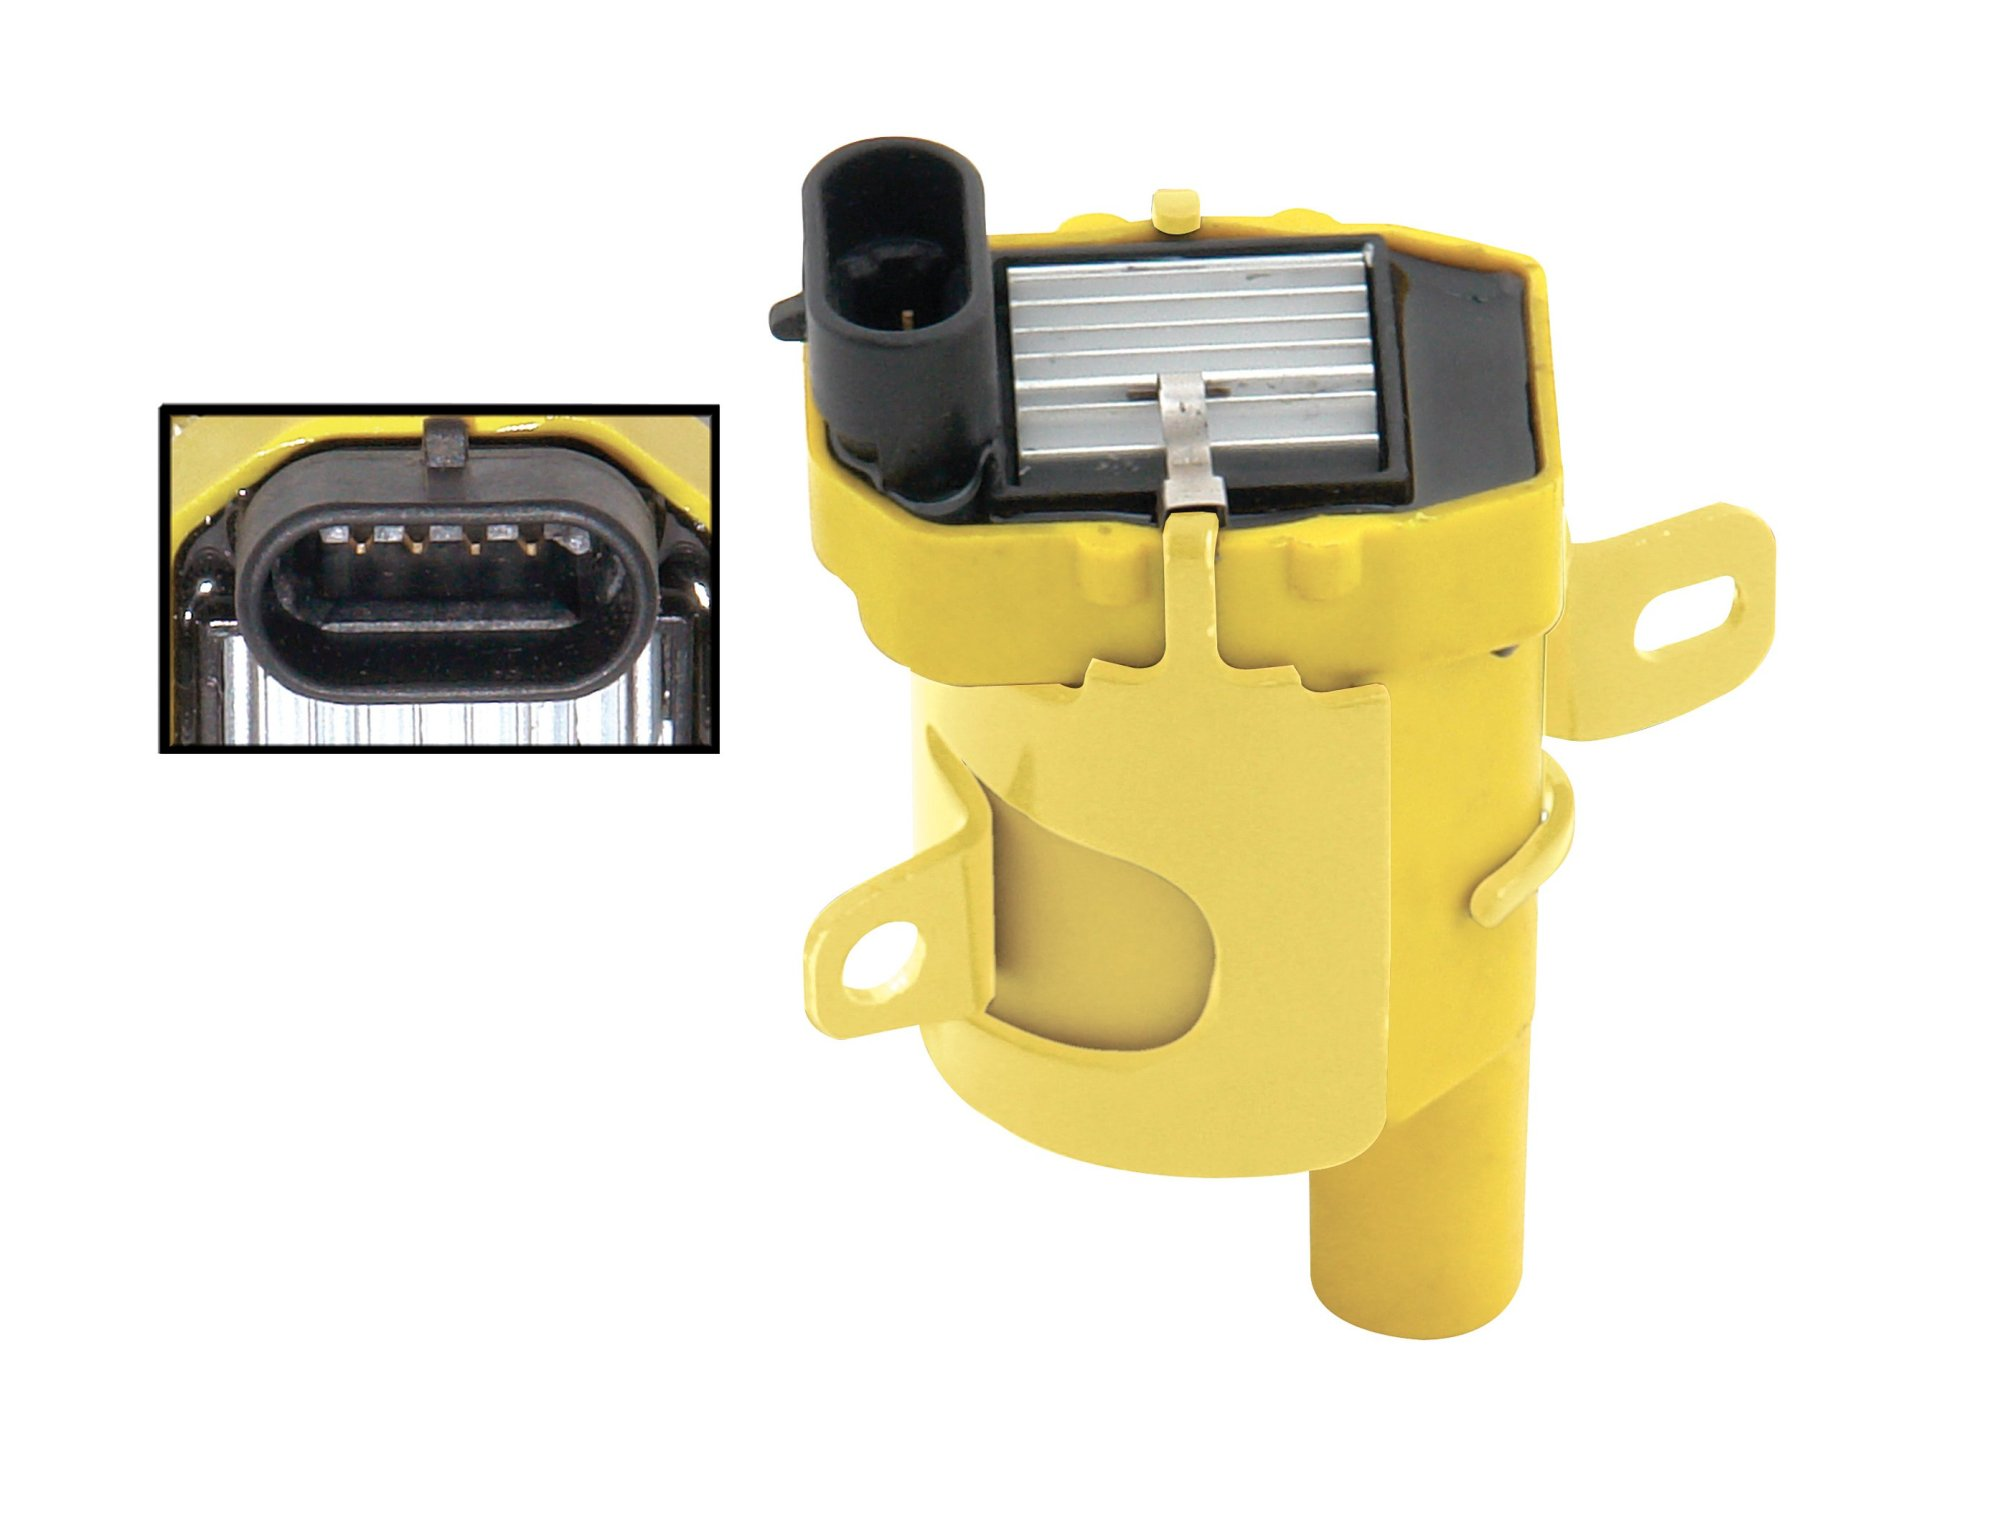 hight resolution of 140040acc ignition coil supercoil for gm ls truck 4 8 5 3 6 0